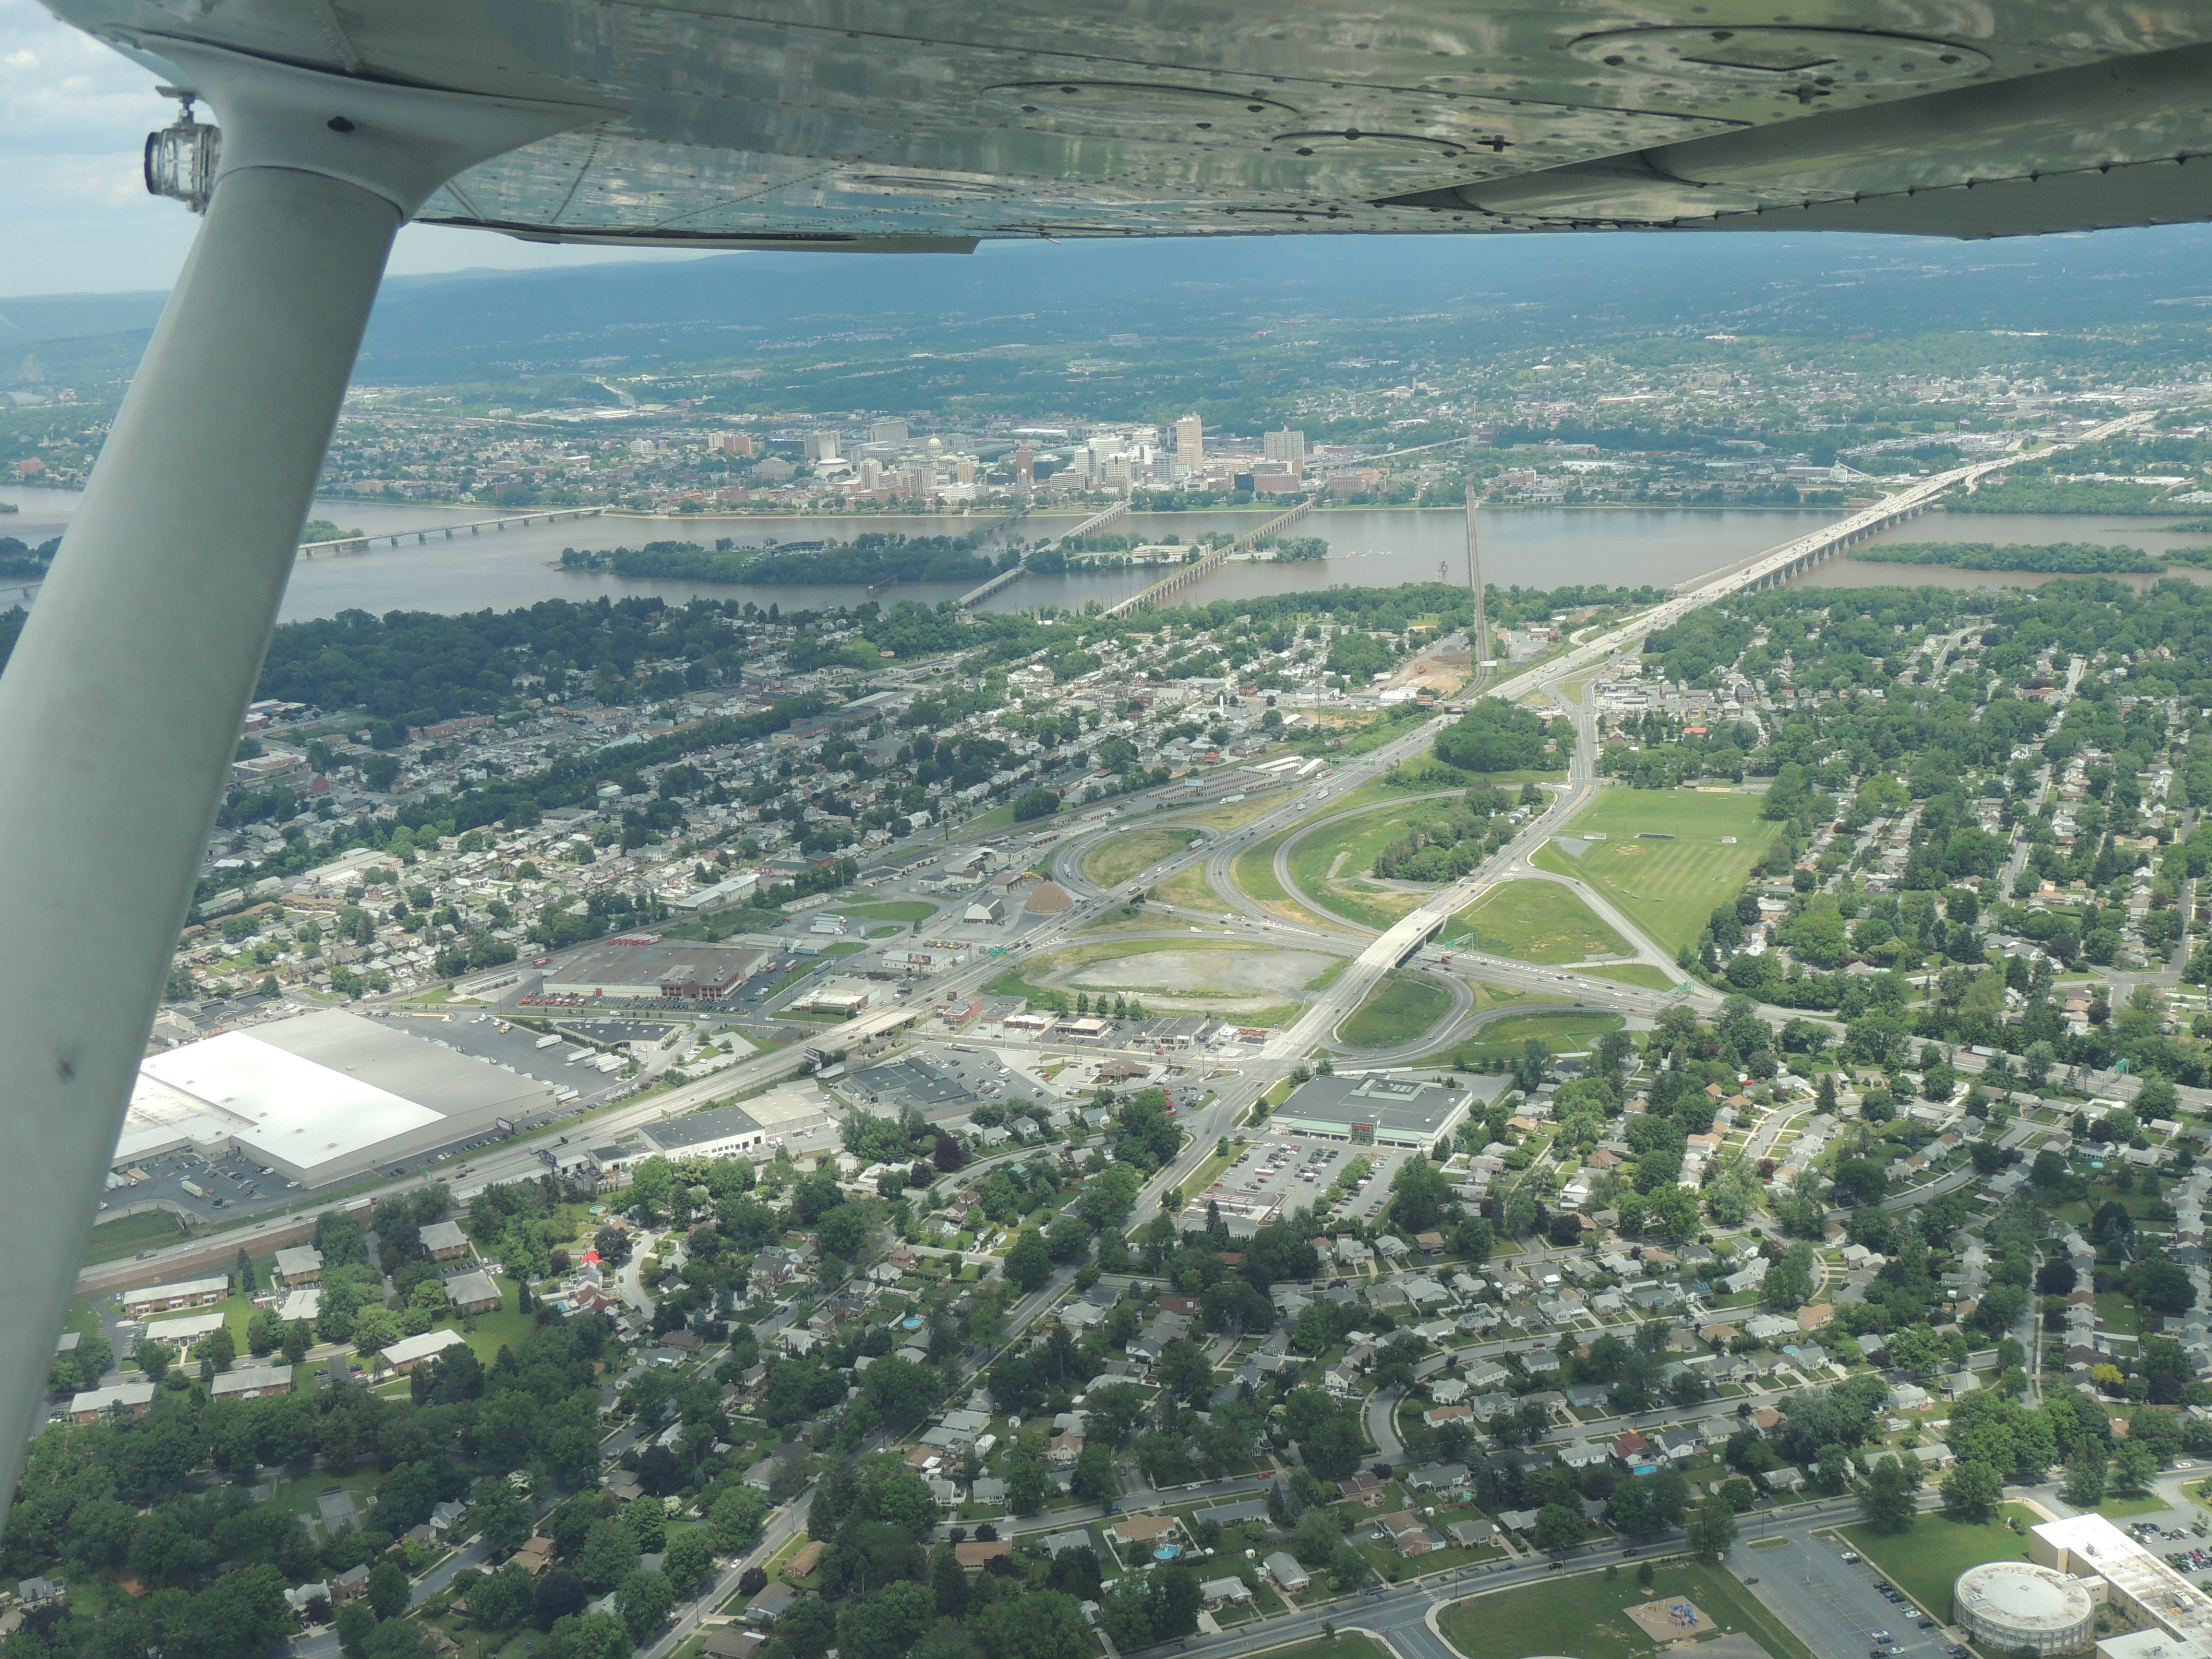 Harrisburg under our wing